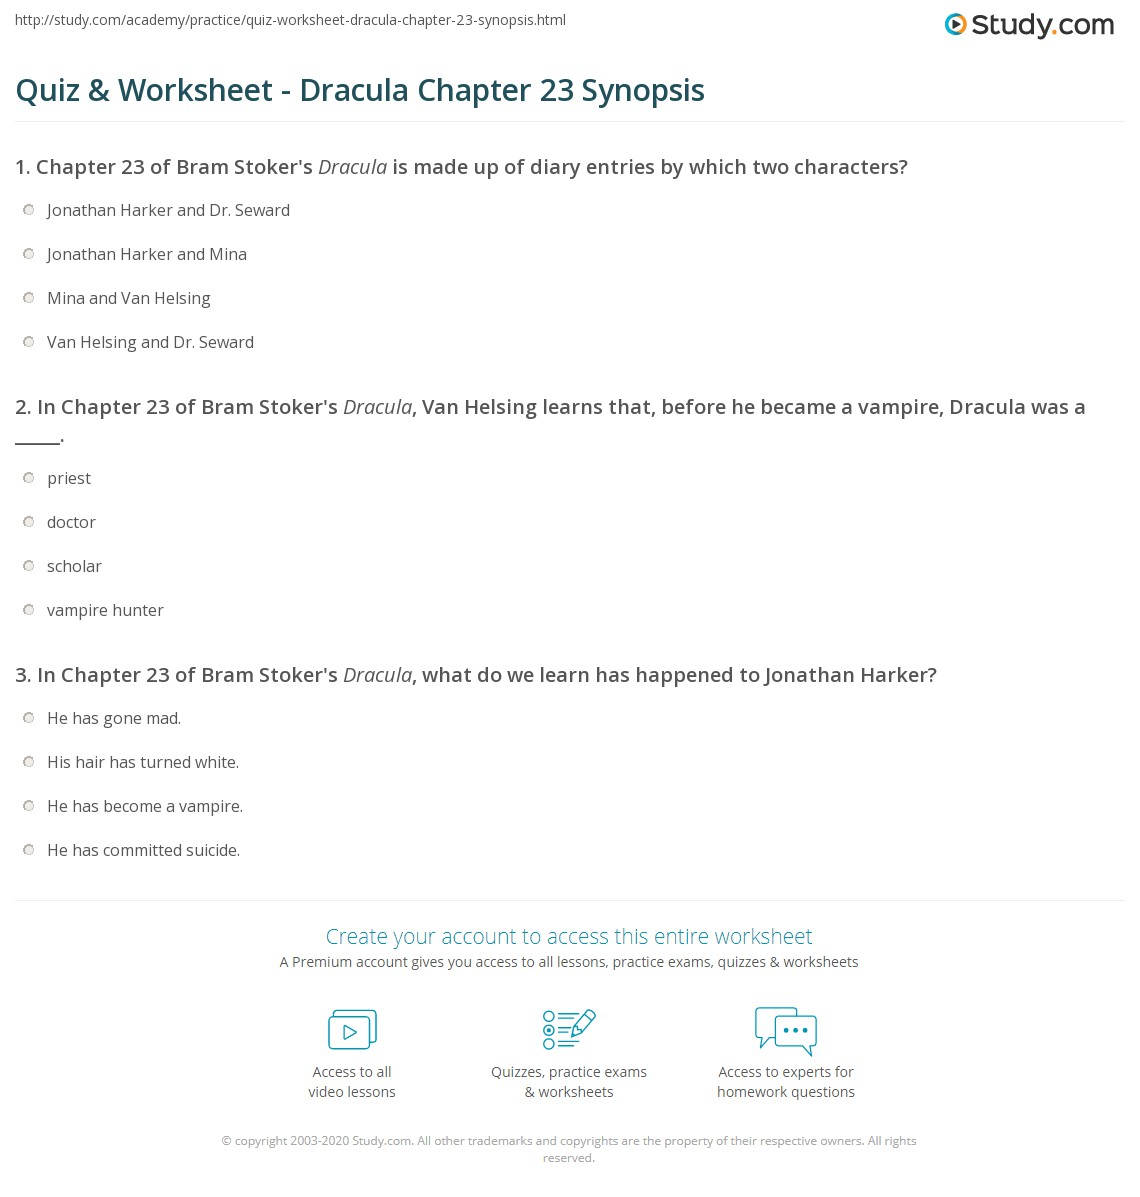 quiz worksheet dracula chapter 23 synopsis study com rh study com Study Guide Format Sample of a Study Guide